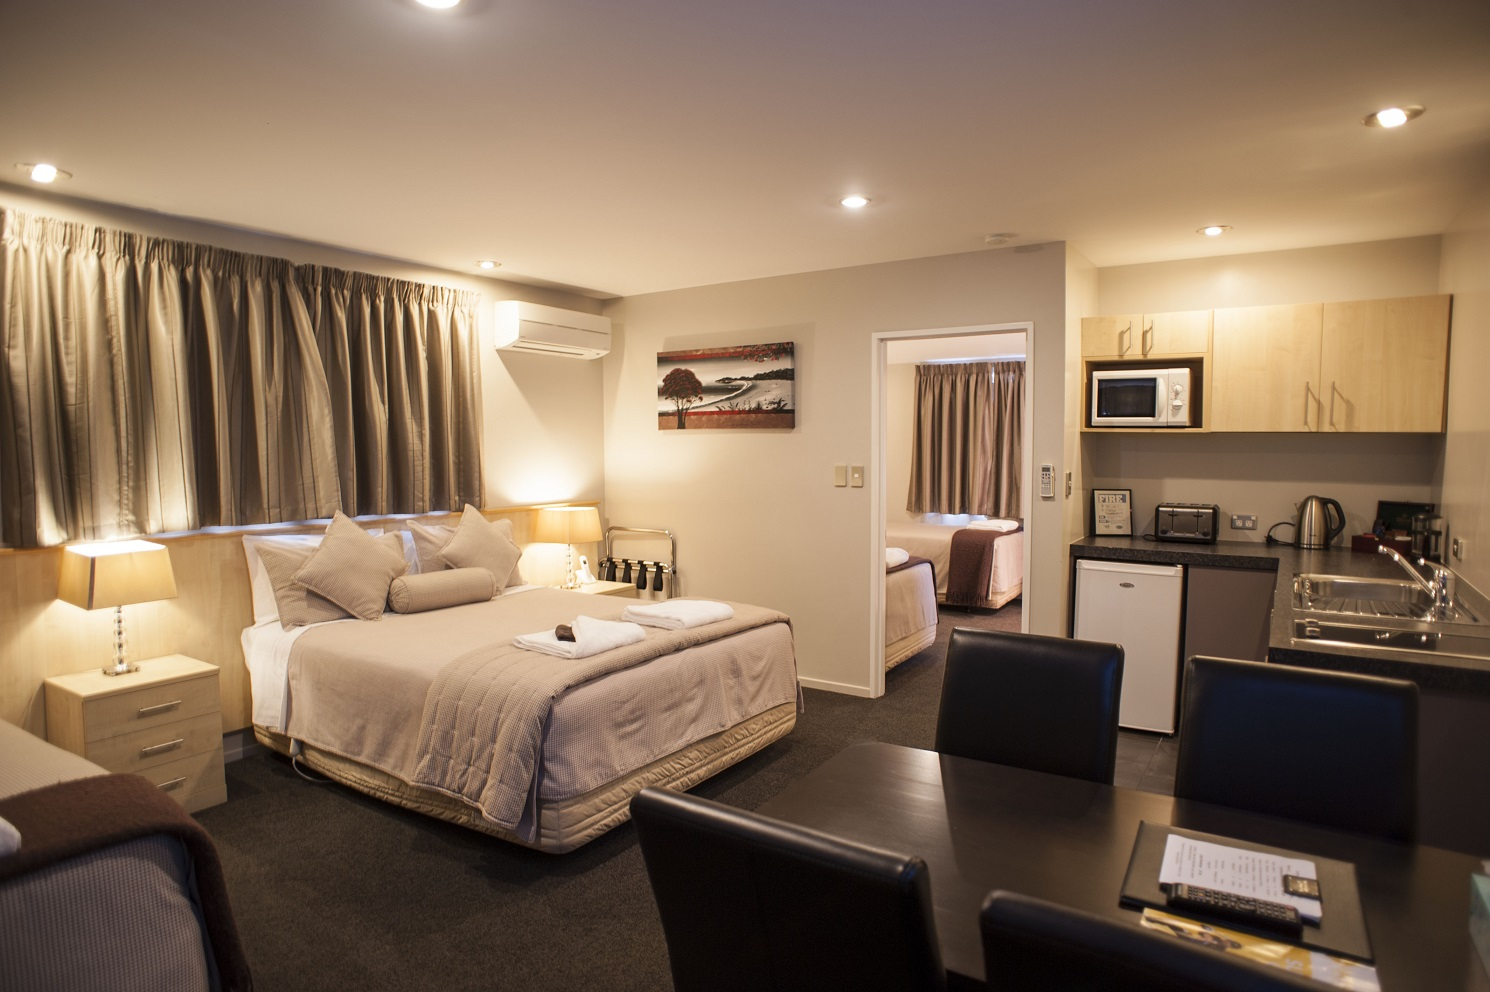 bedroom studio apartments for rent sydney 3 bedroom house melbourne